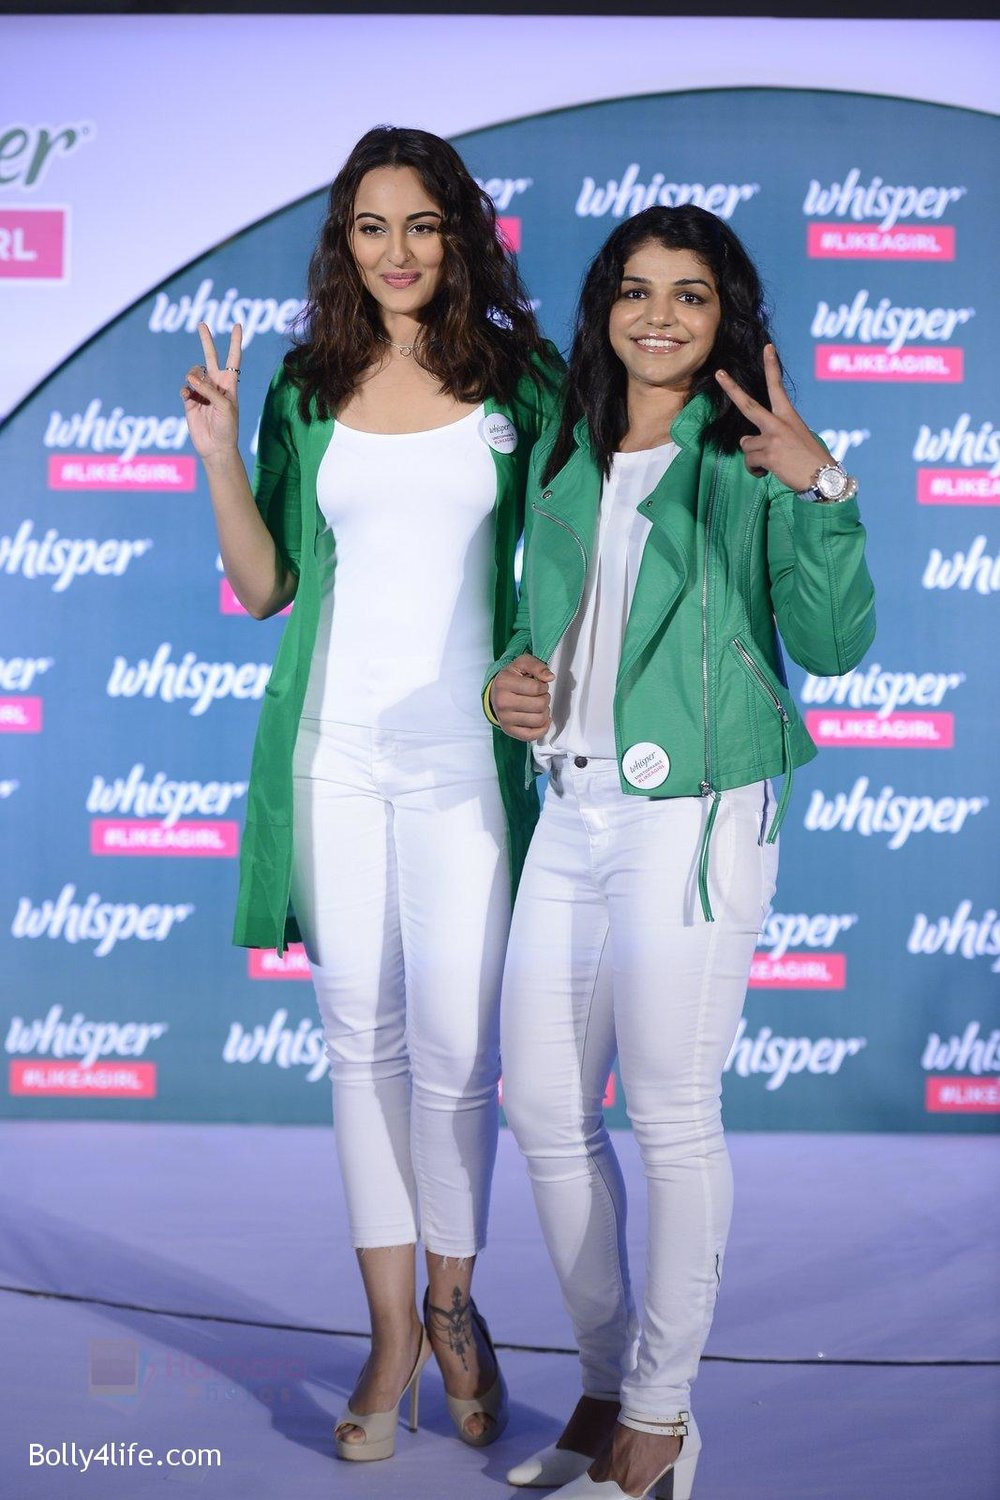 Sonakshi-Sinha-and-Sakshi-Malik-at-Whisper-new-campaign-launch-on-20th-Sept-2016-72.jpg